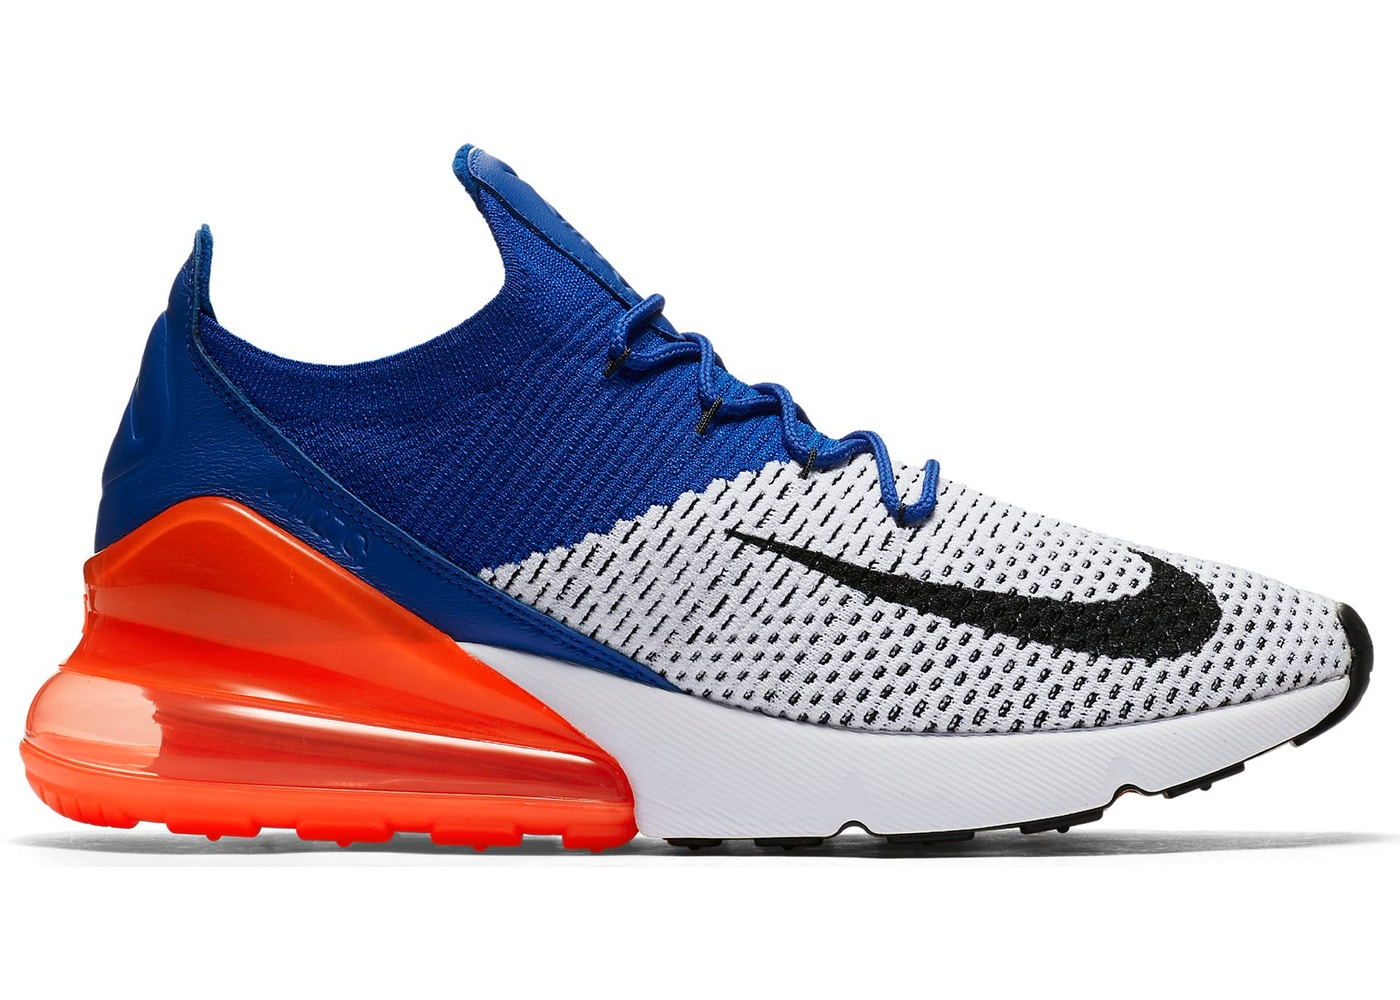 Air Max 270 Flyknit Racer Blue Total Crimson - AO1023-101 4127195d6